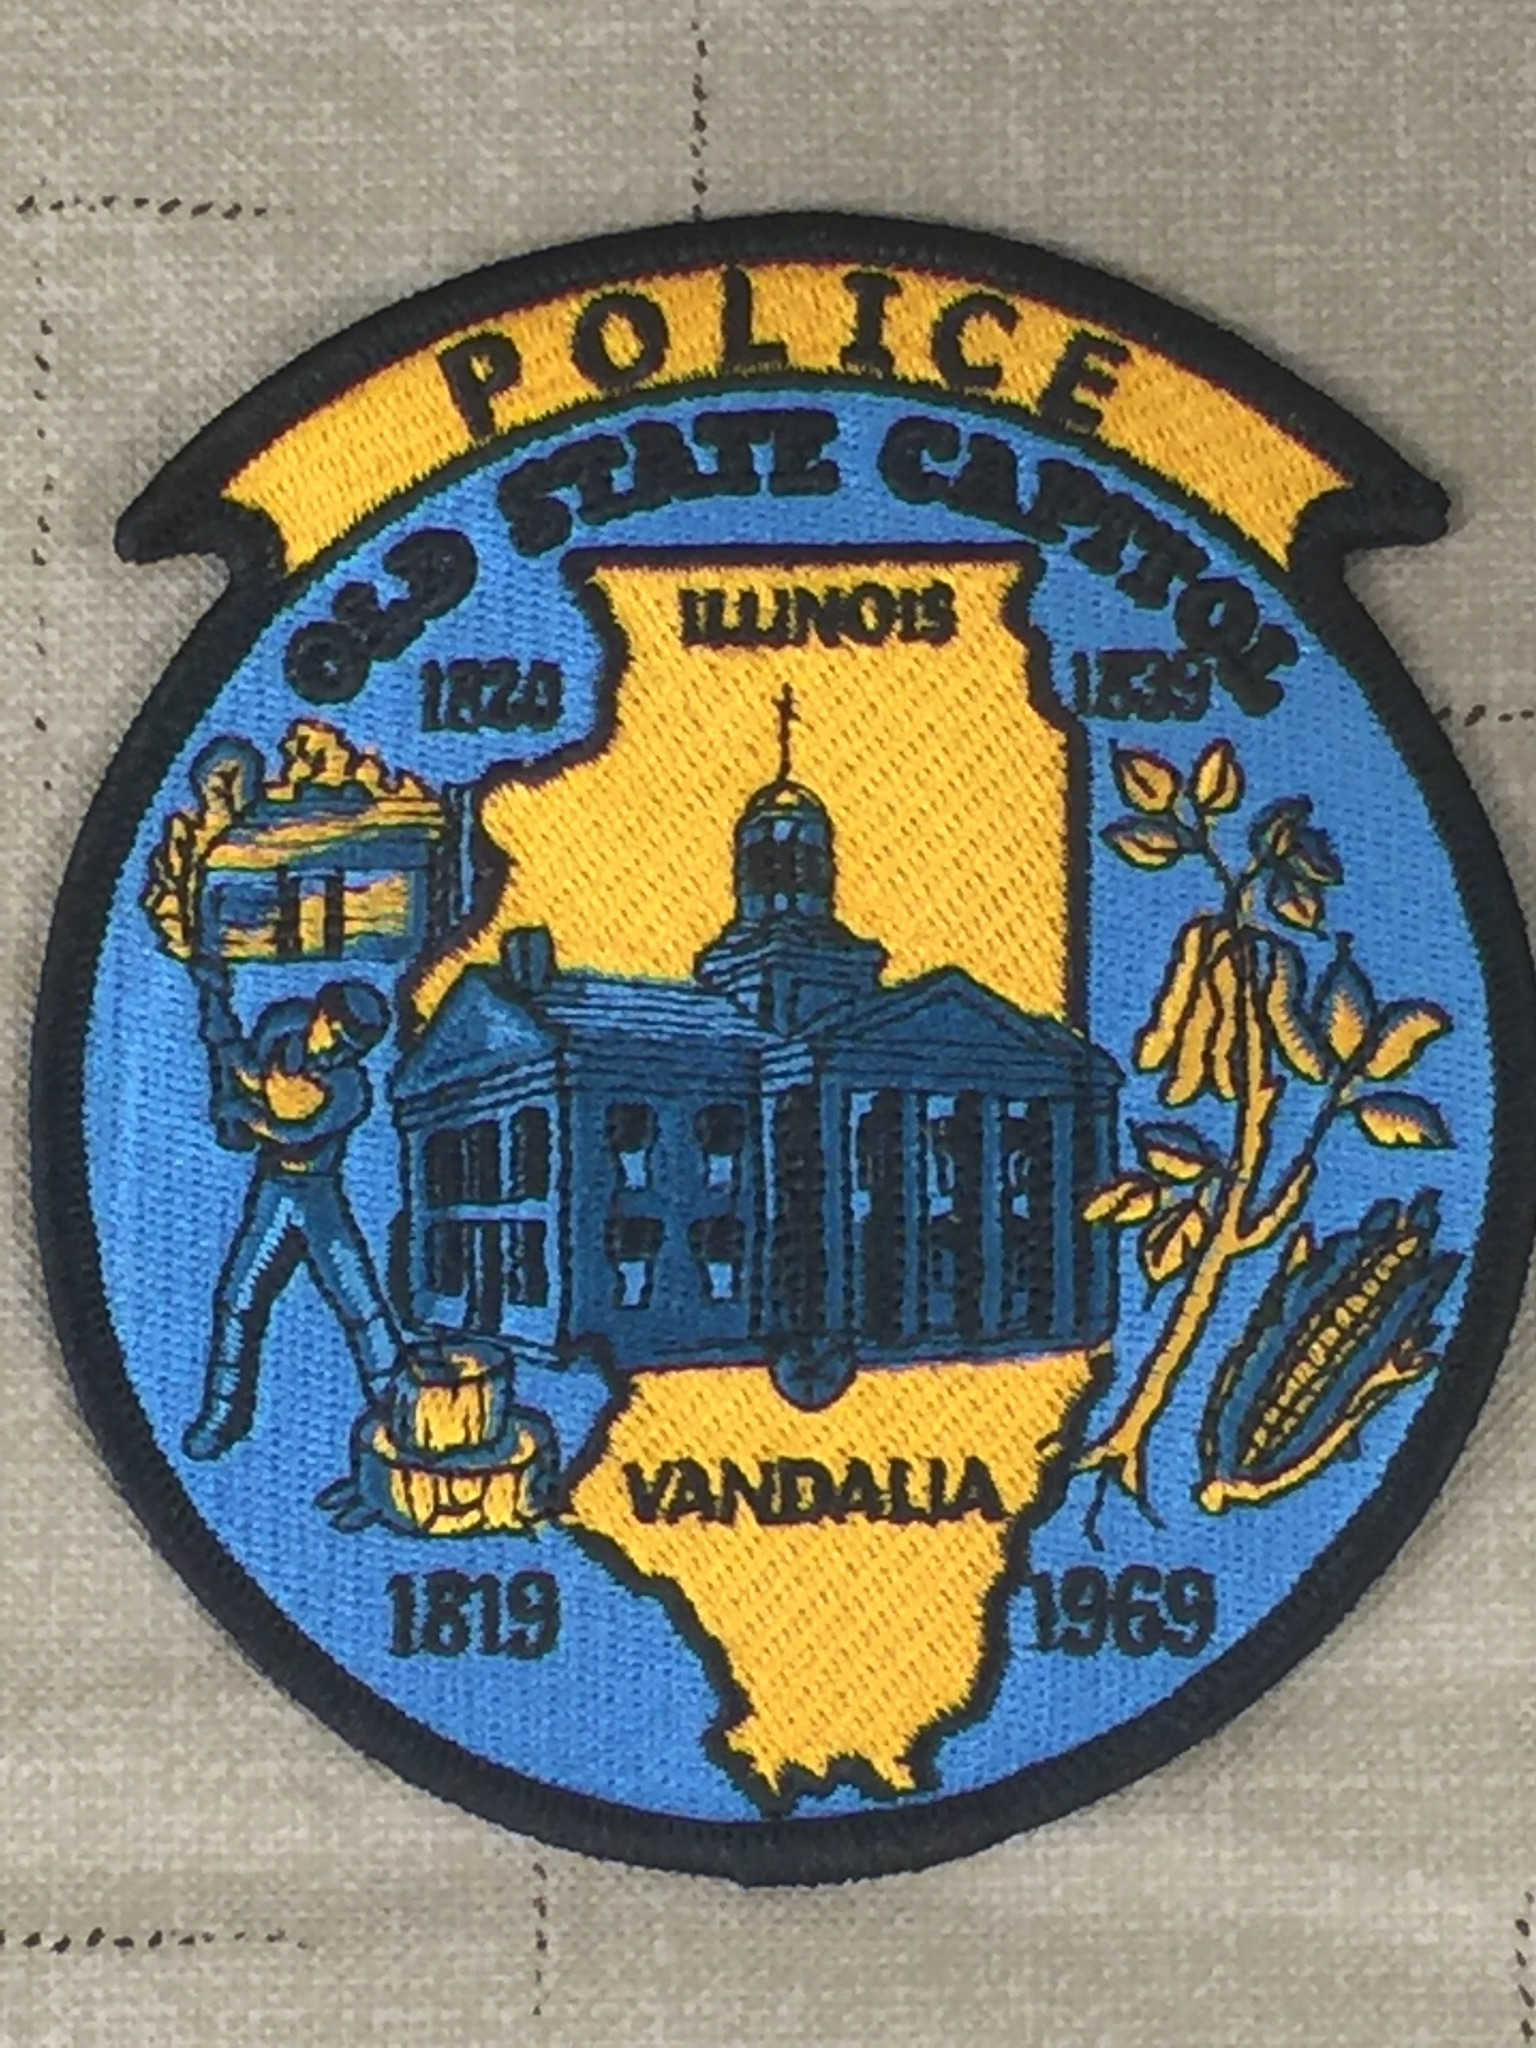 Vandalia PD wants public aware of extra workers in town installing new Liberty Meters